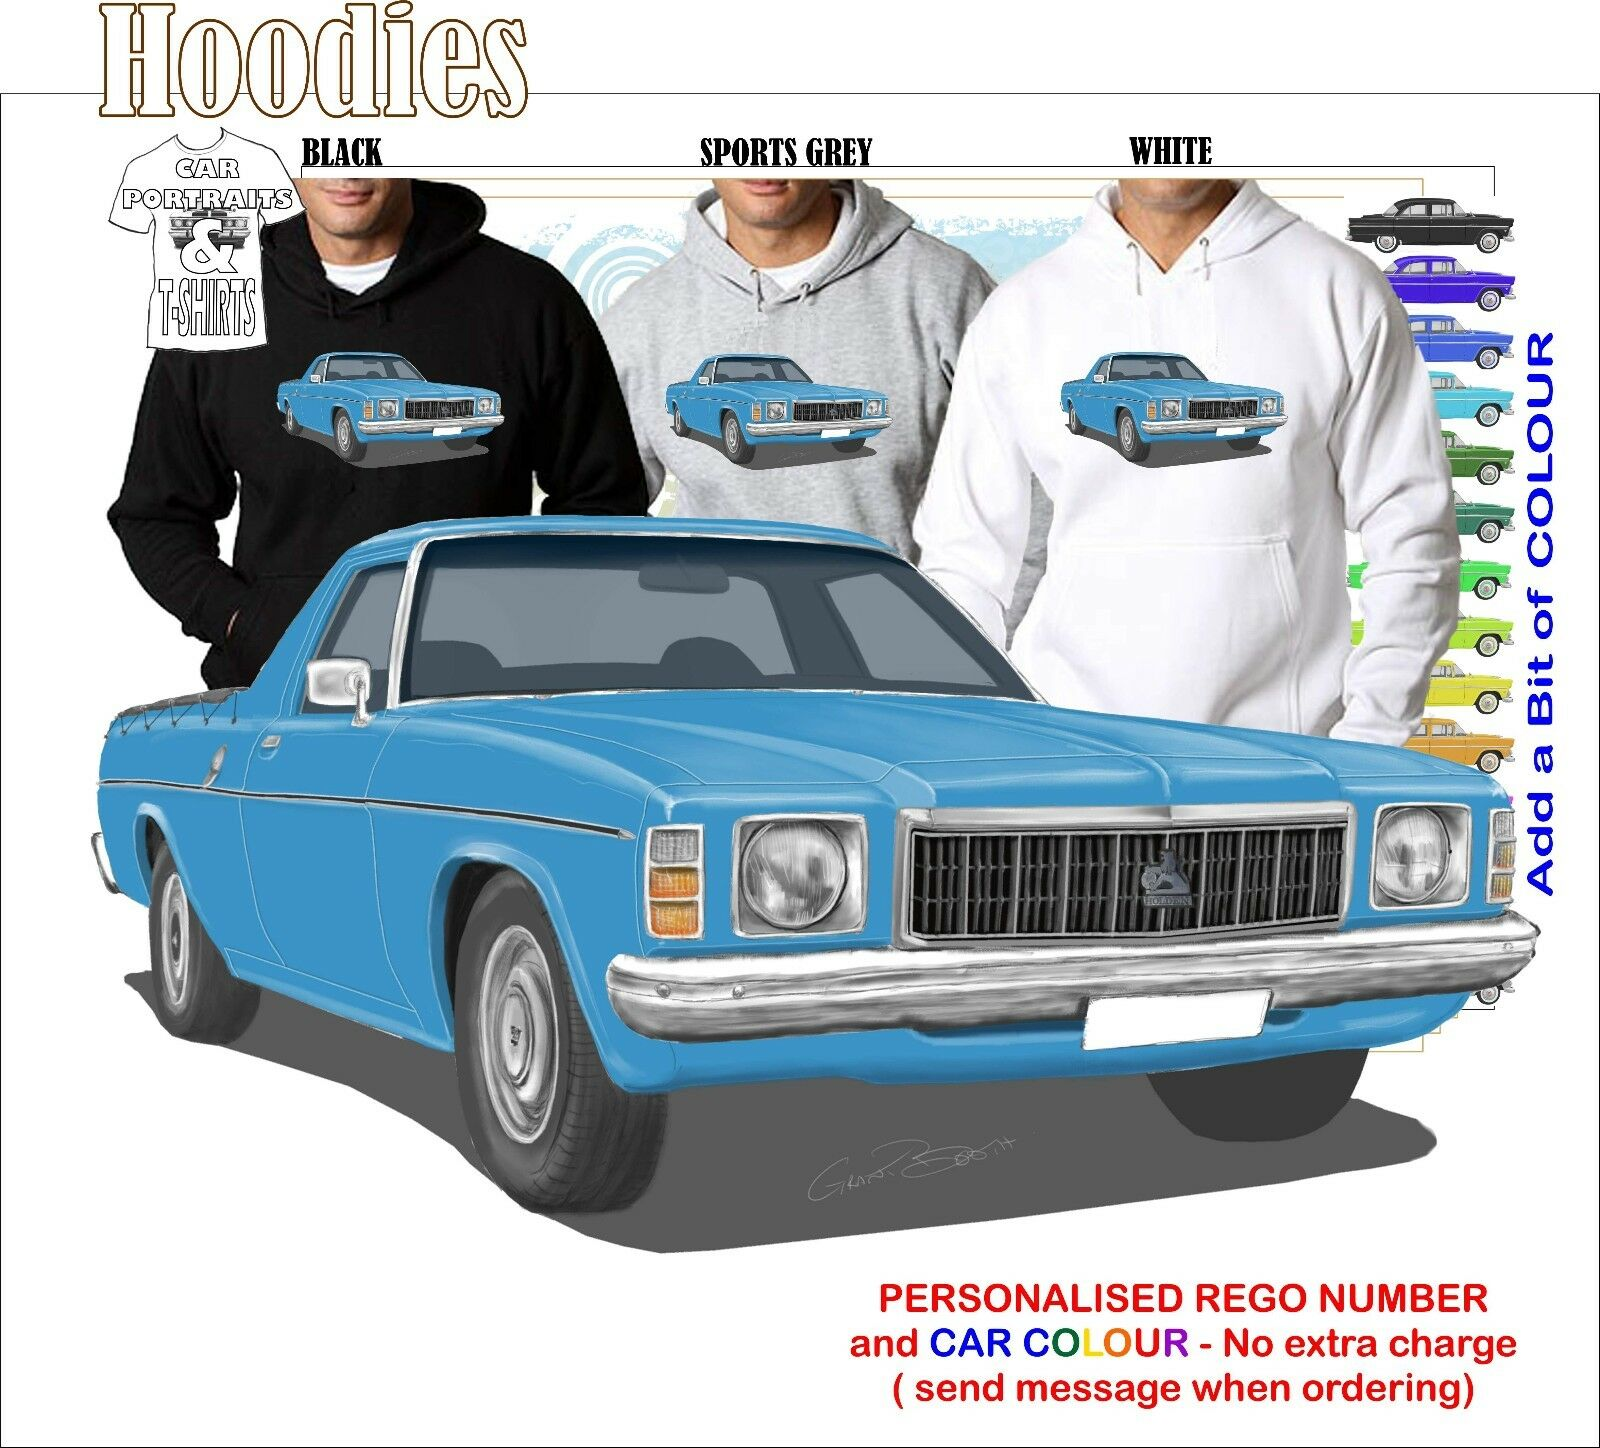 76-77 HX HOLDEN UTE HOODIE ILLUSTRATED CLASSIC RETRO MUSCLE SPORTS CAR